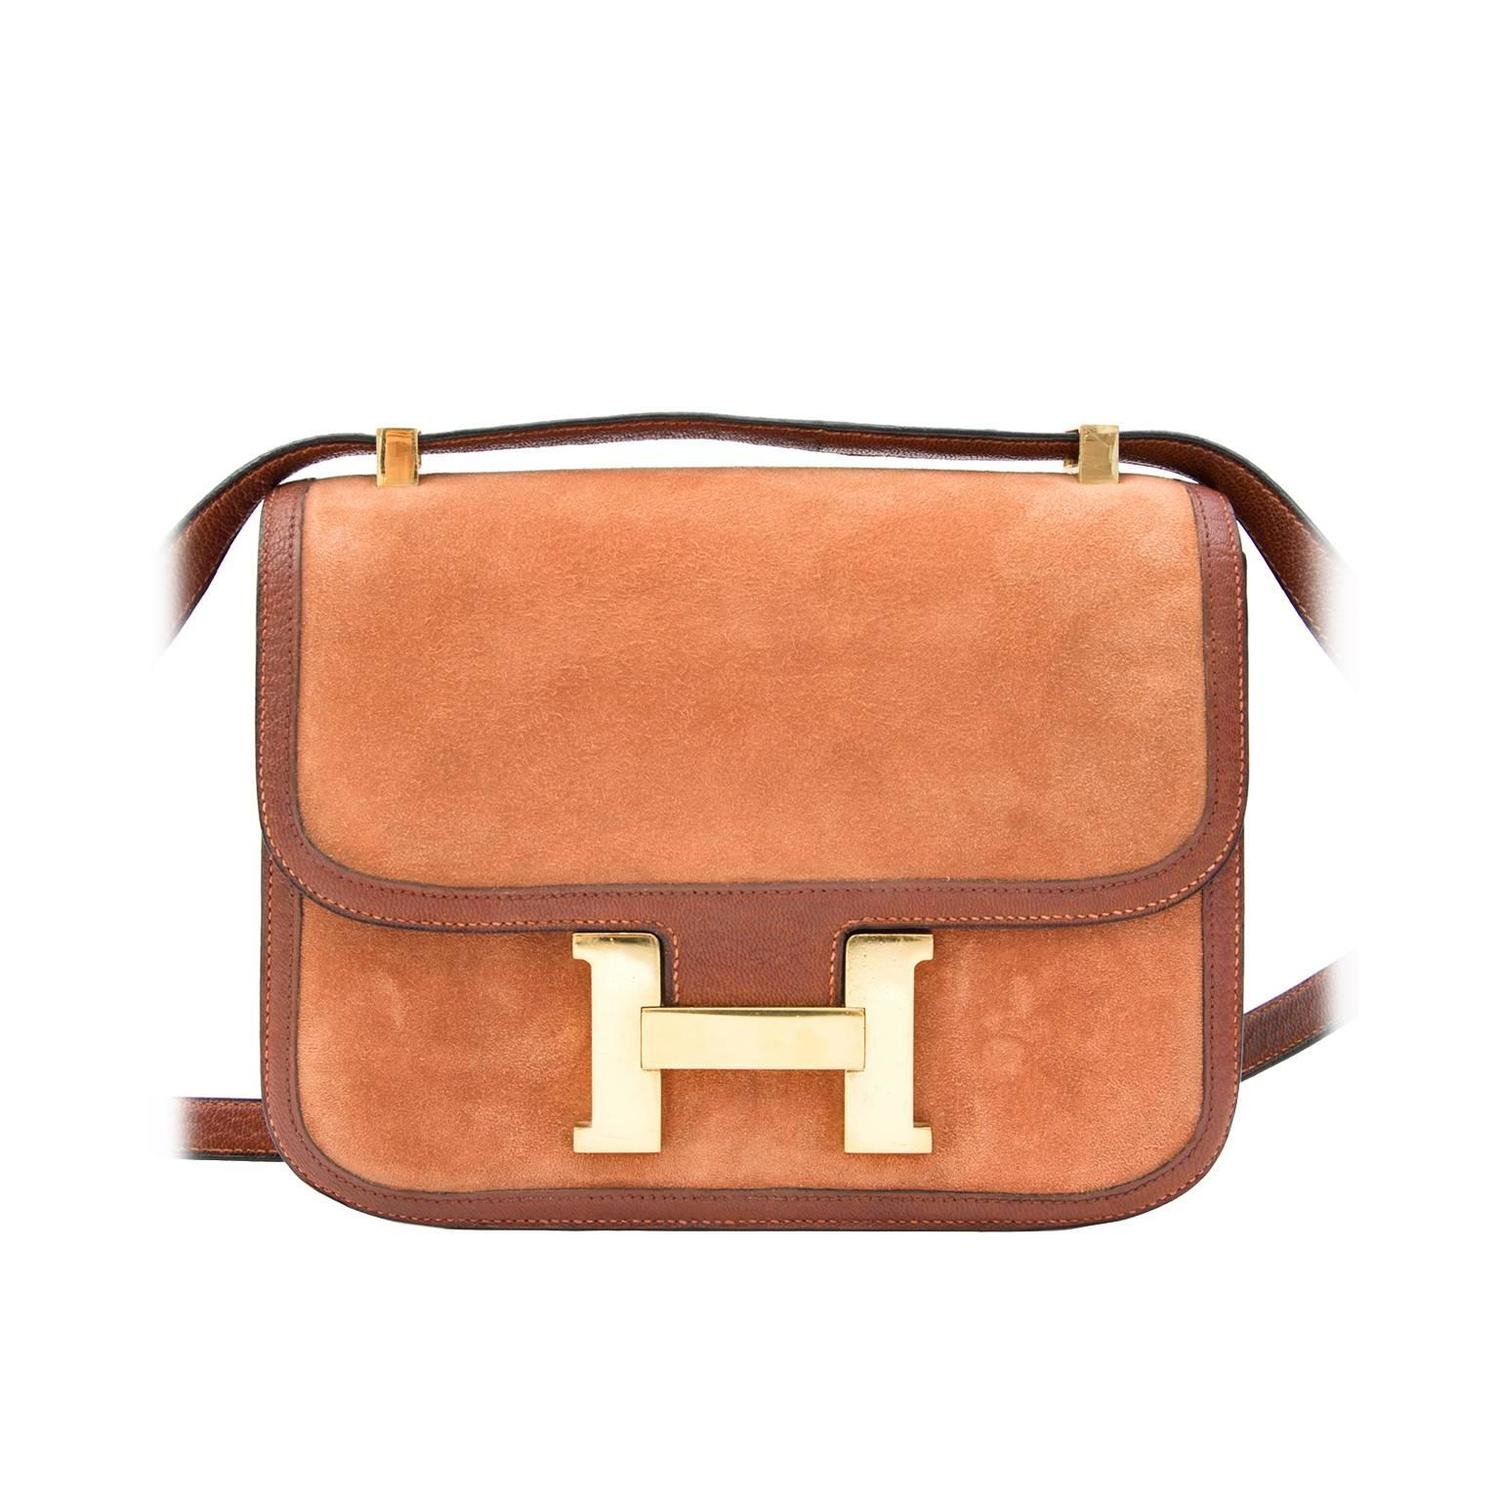 Hermes Constance Veau Doblis Suede Noisette 24cm For Sale at 1stdibs